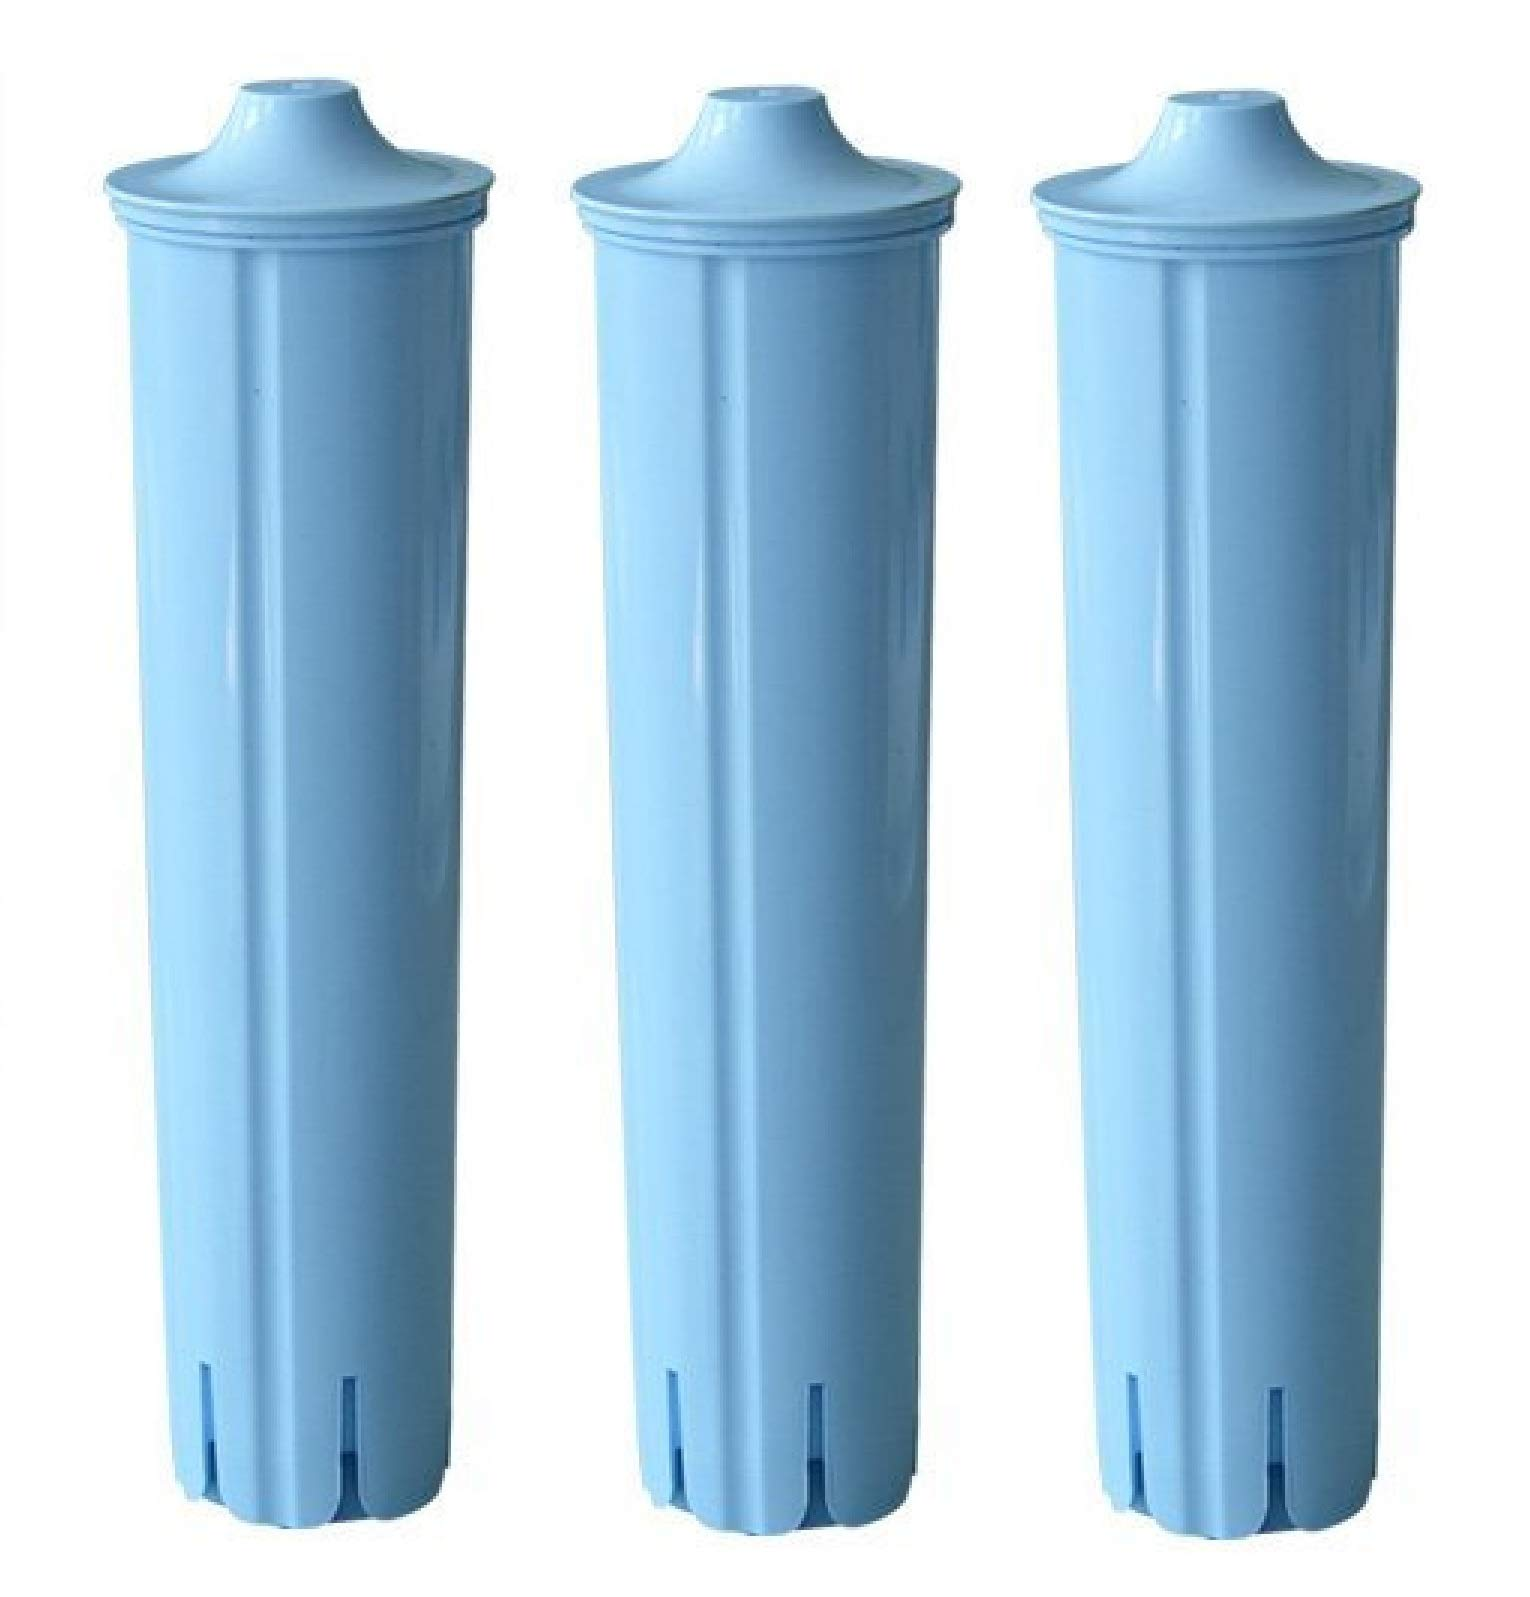 GoldTone Brand Charcoal Water Filter fits Jura Espresso Machine & Jura Capresso Coffee Maker. Replaces your Jura Clearyl Blue Water Filter - [3 PACK]